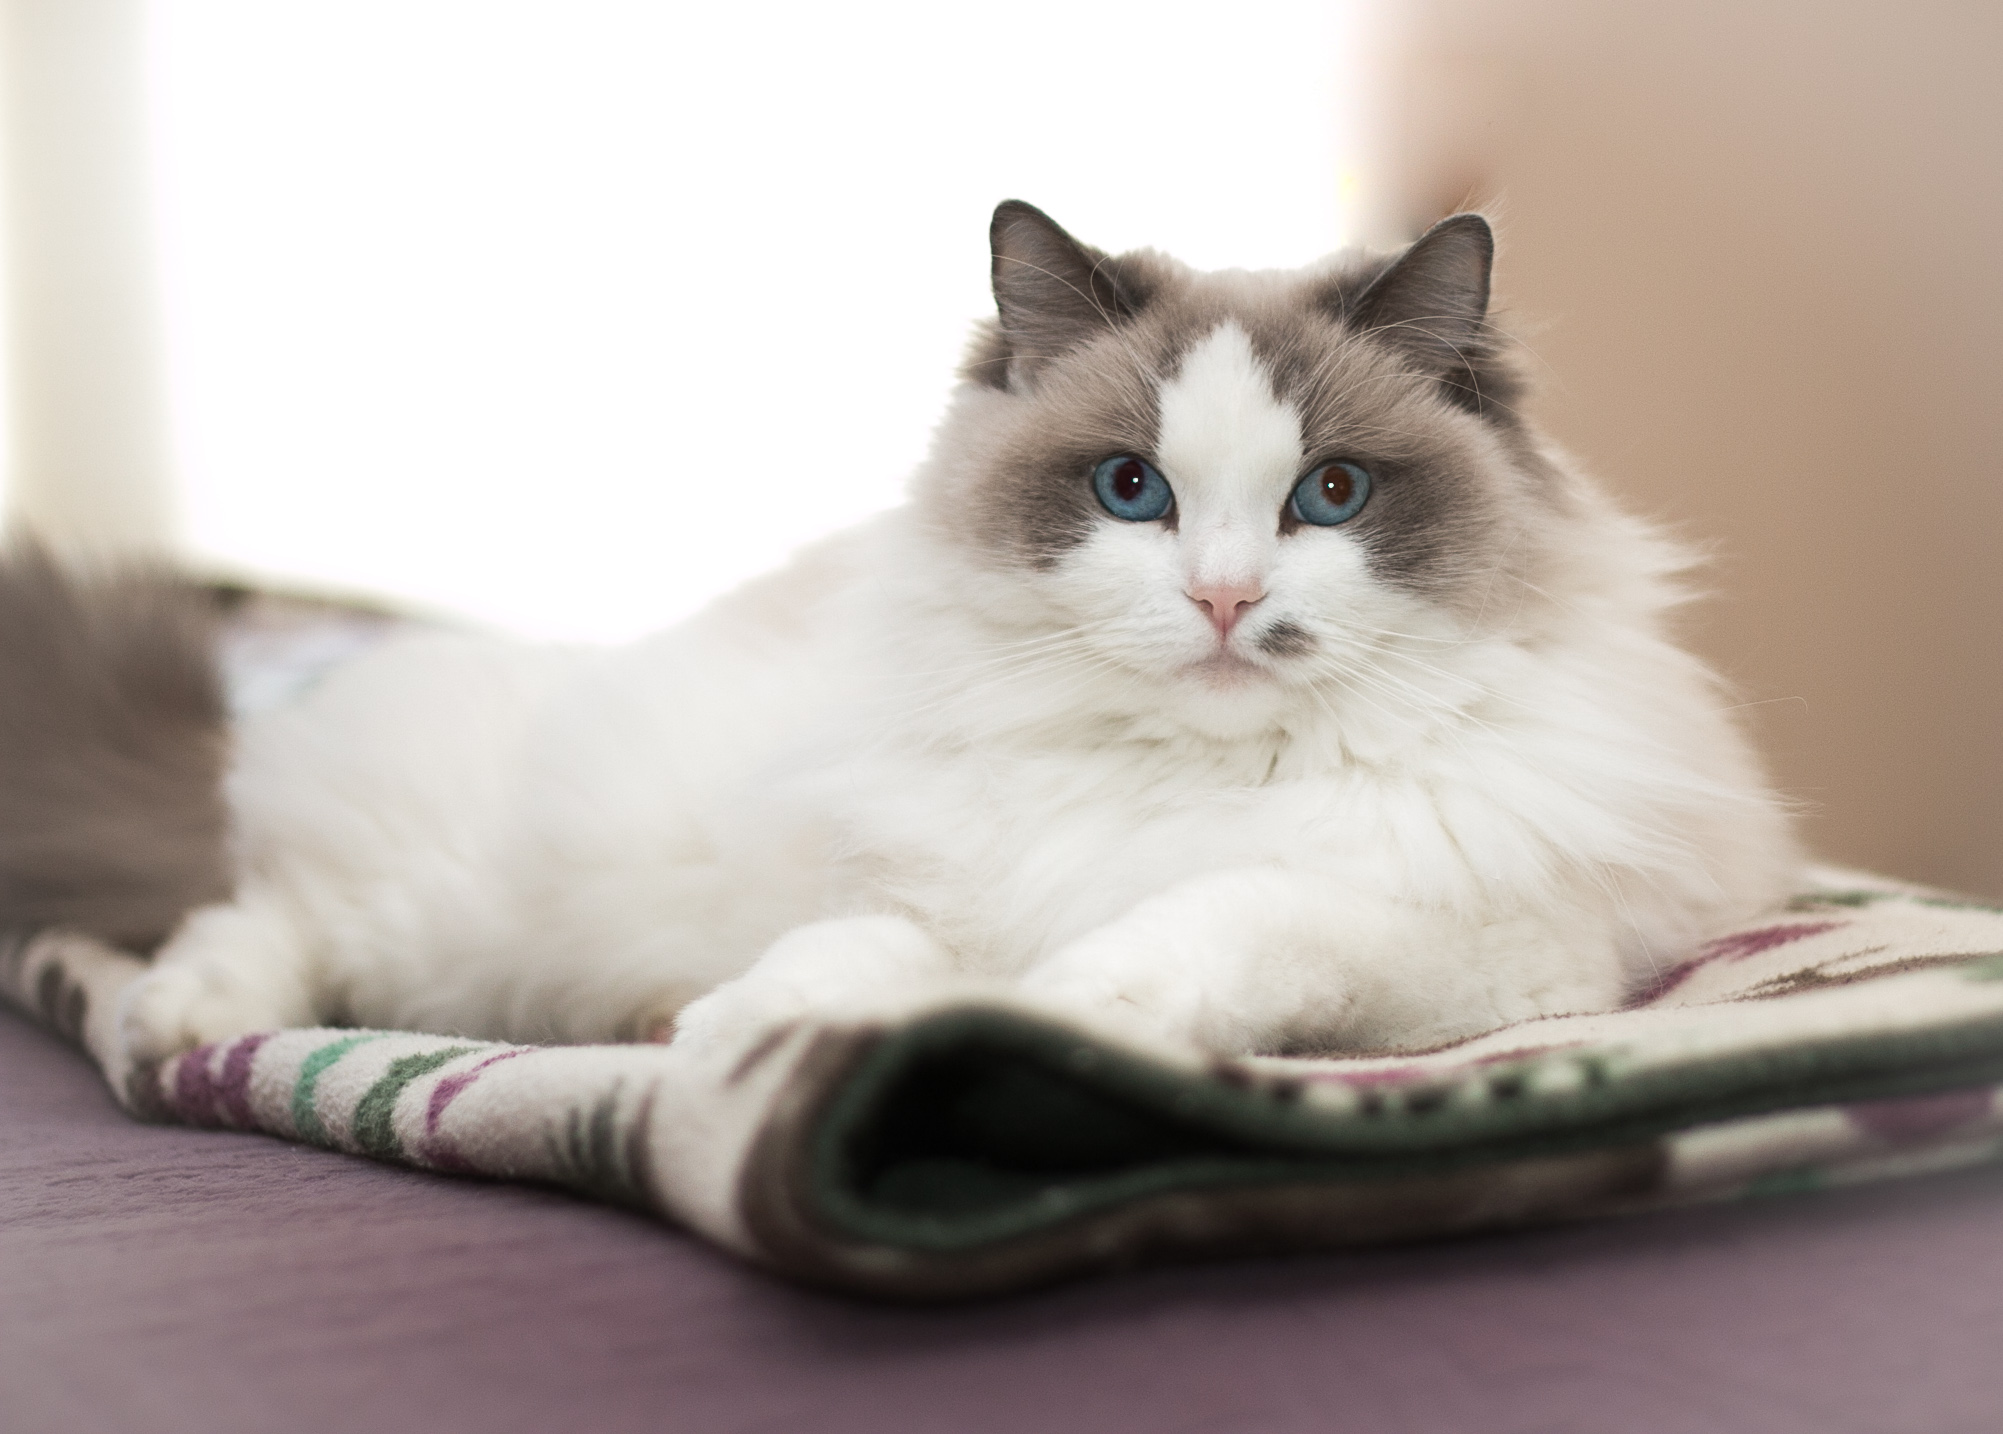 cat named Smudge from PNW Insurance Group